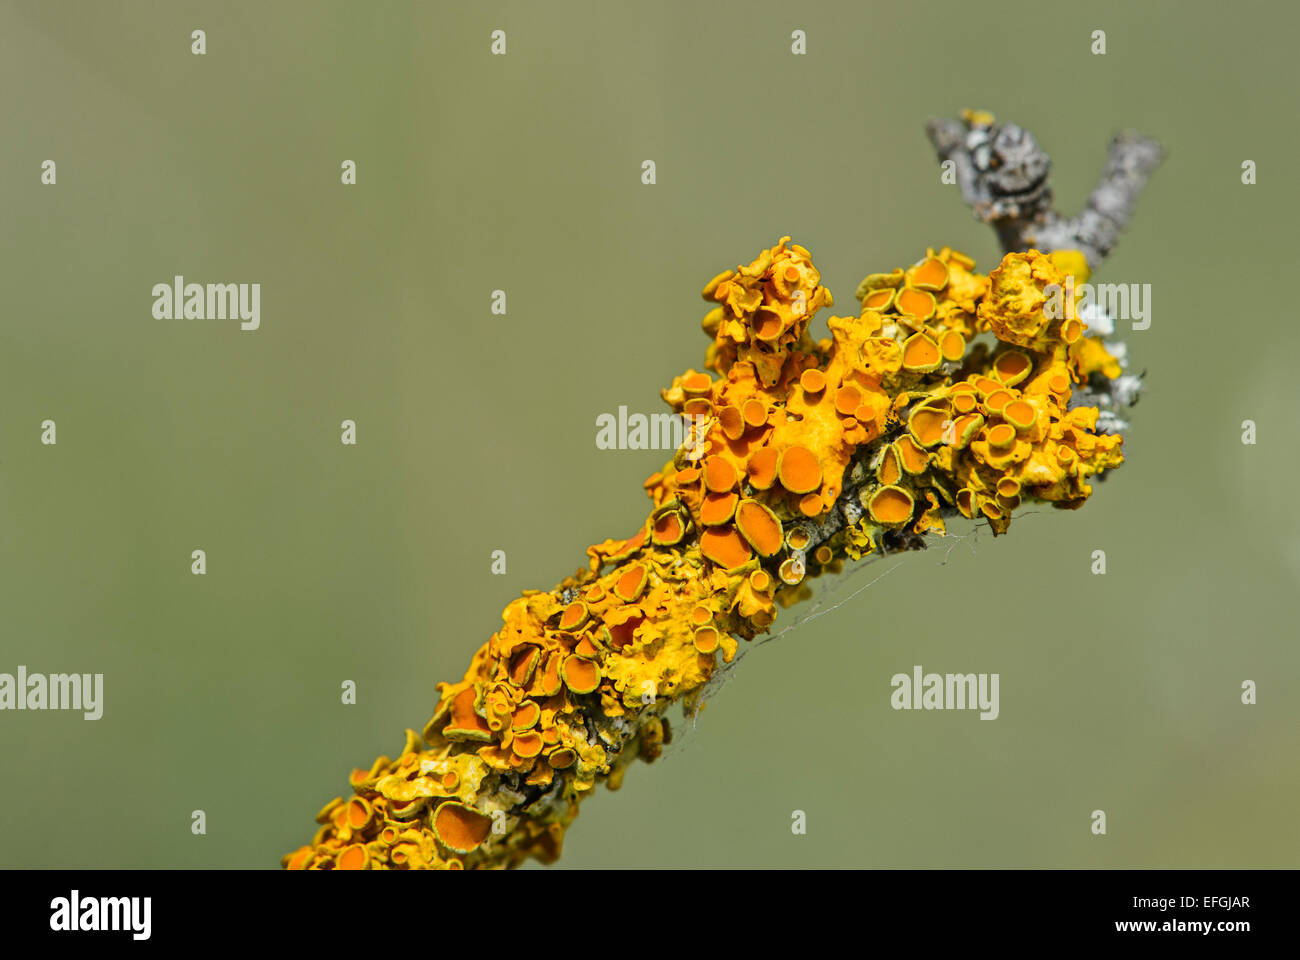 Common Orange Lichen (Xanthoria parietina) with bowl-shaped spore-bearing structures, apothecia, Alsace, France - Stock Image